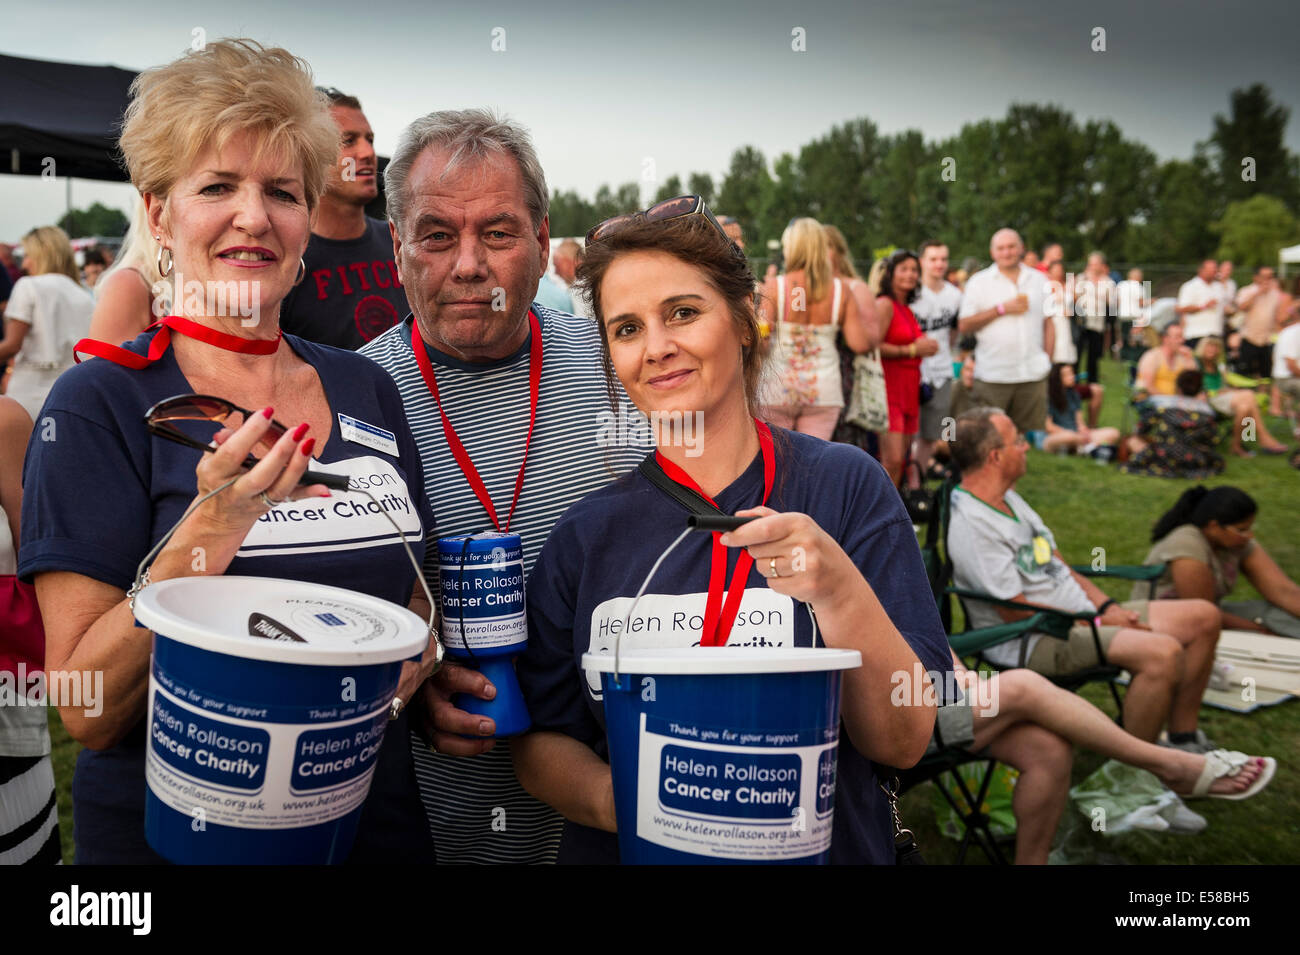 Volunteers collecting for the Helen Rollason Cancer Charity at the Brentwood Festival. - Stock Image